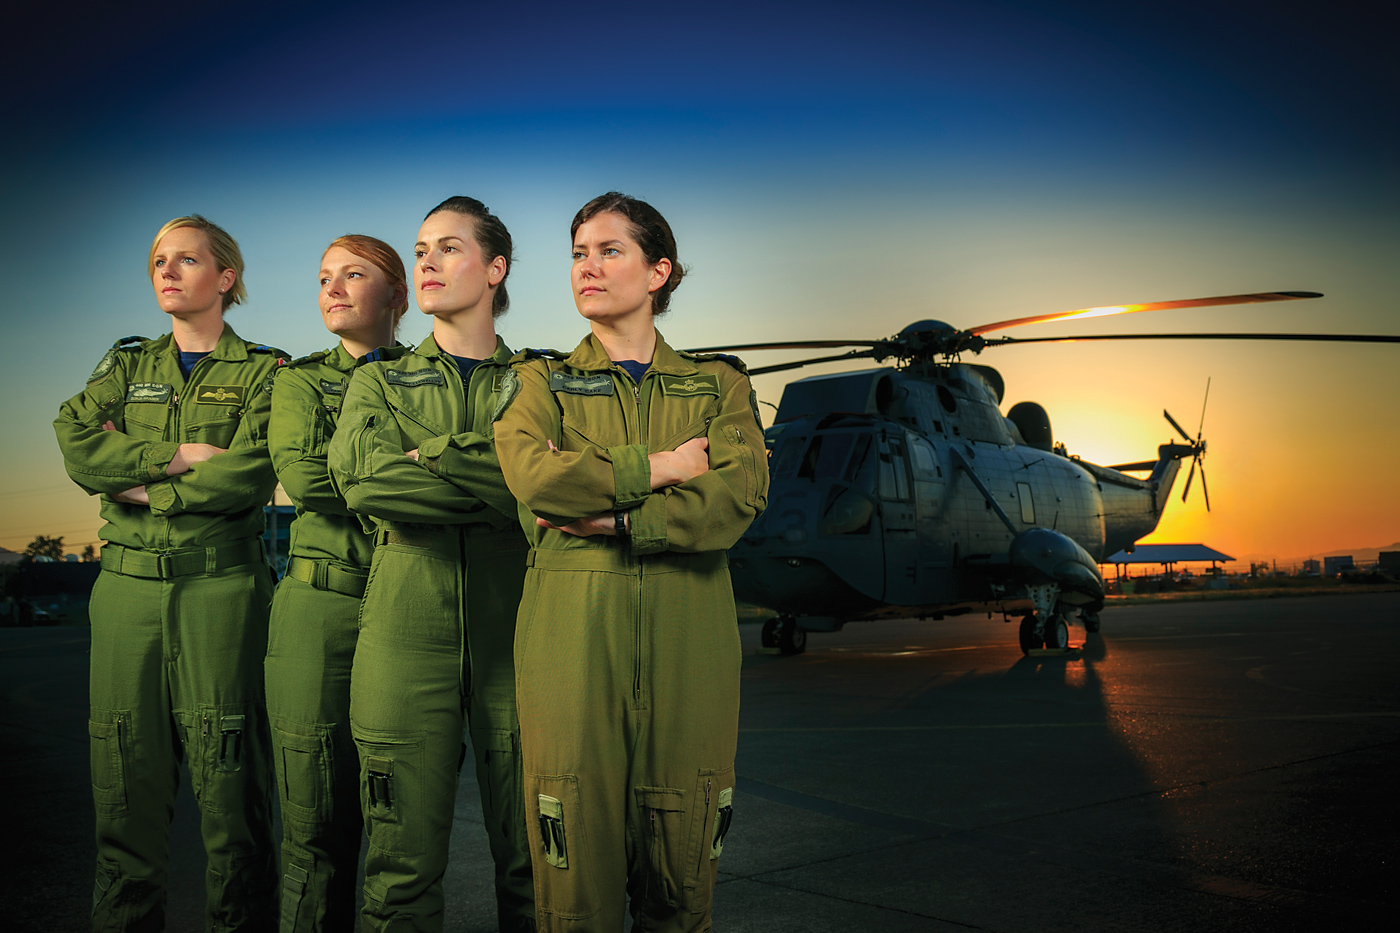 A crew from 443 Maritime Helicopter Squadron included, left to right, Sonja Hansen, Tanya Carr, Chelsey Llewellyn and Carly Cake. Heath Moffatt Photo